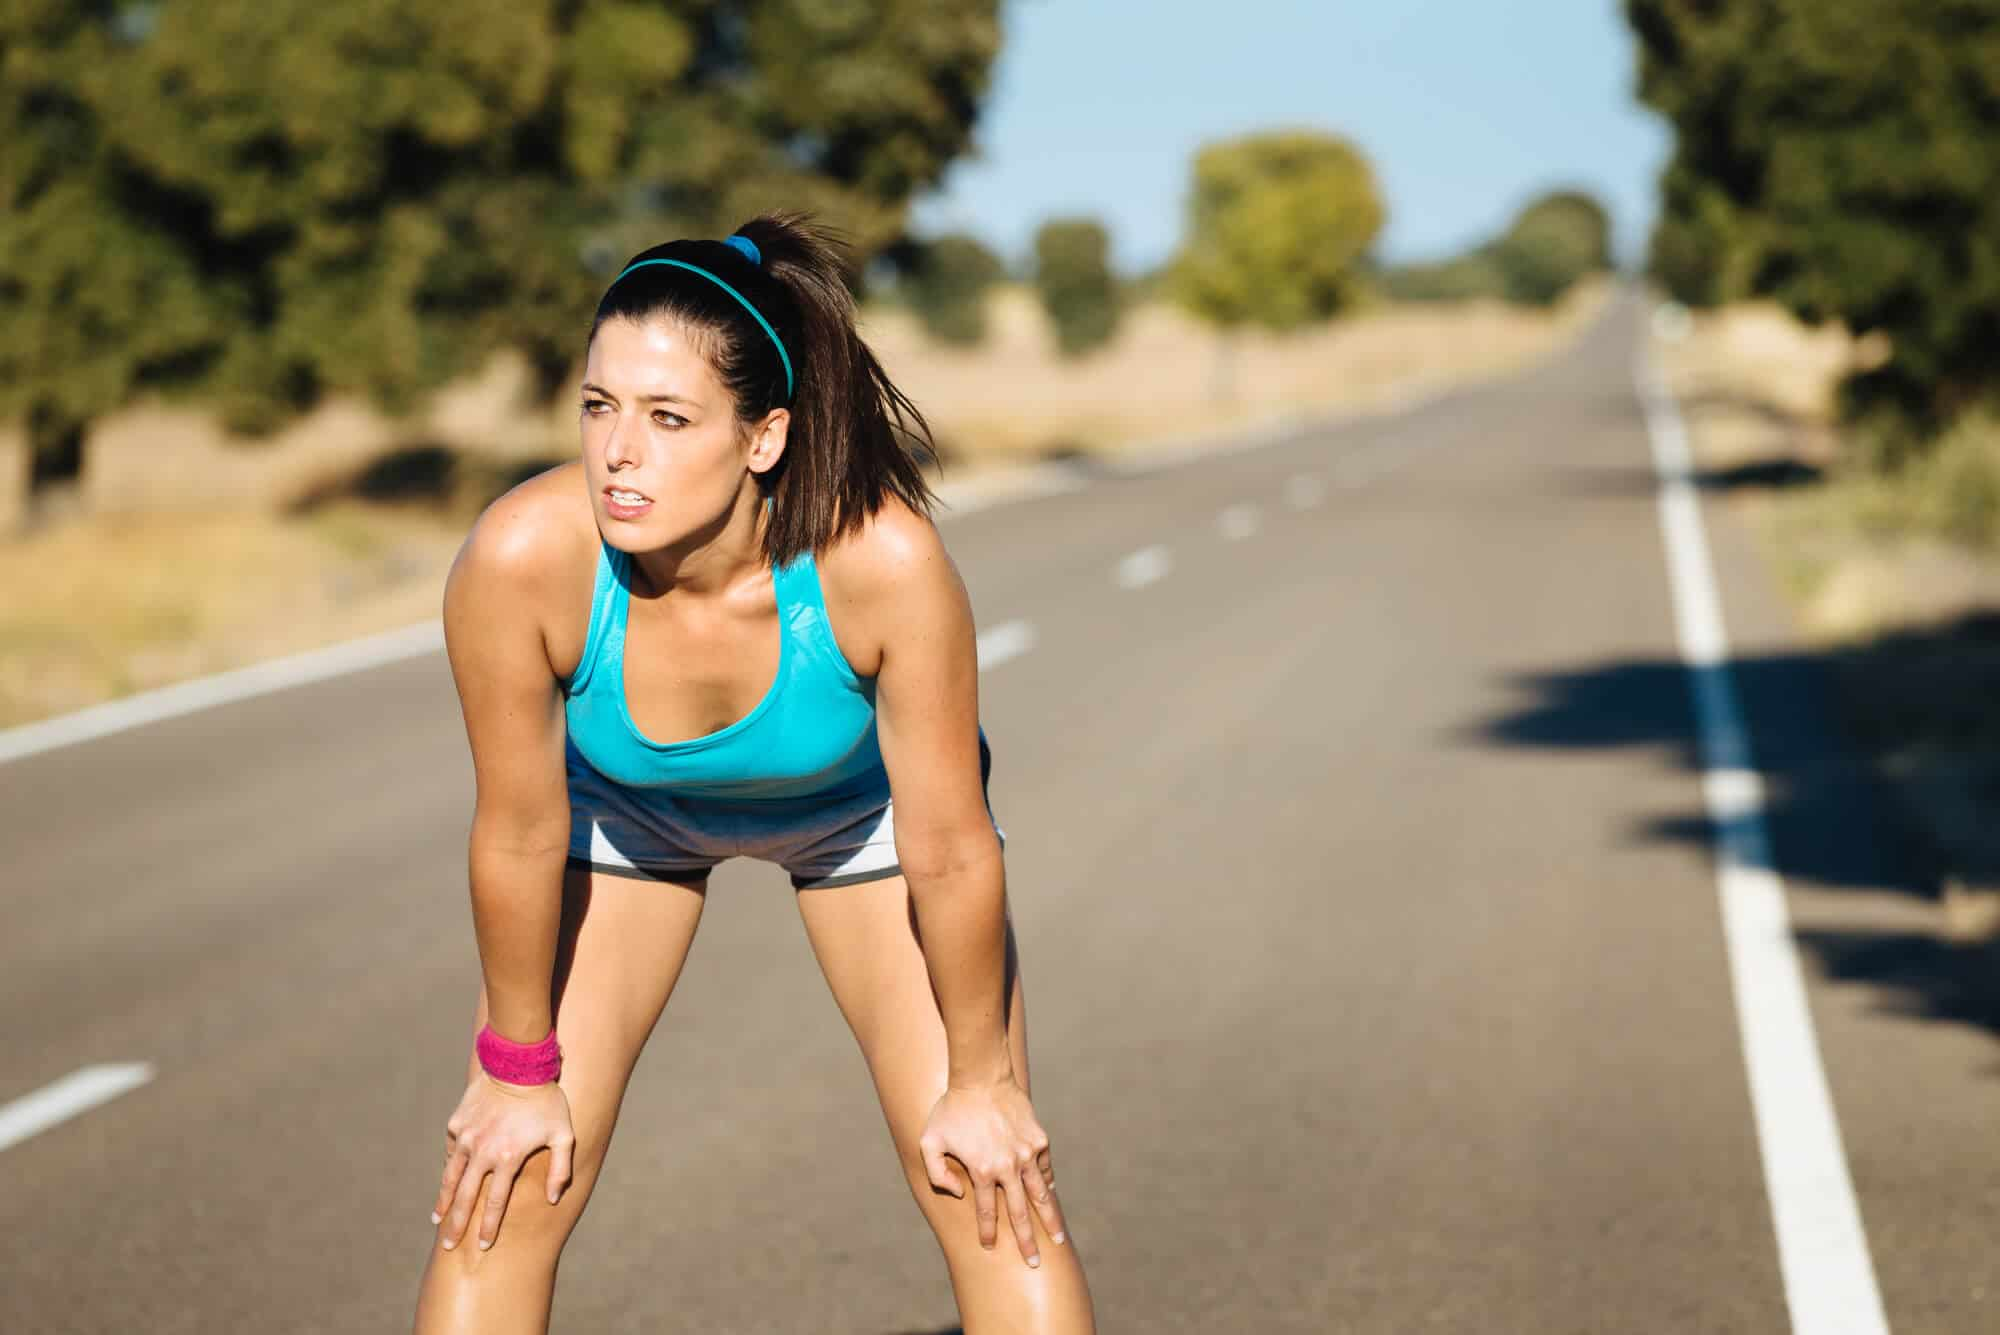 learn how to start running when you're out of shape